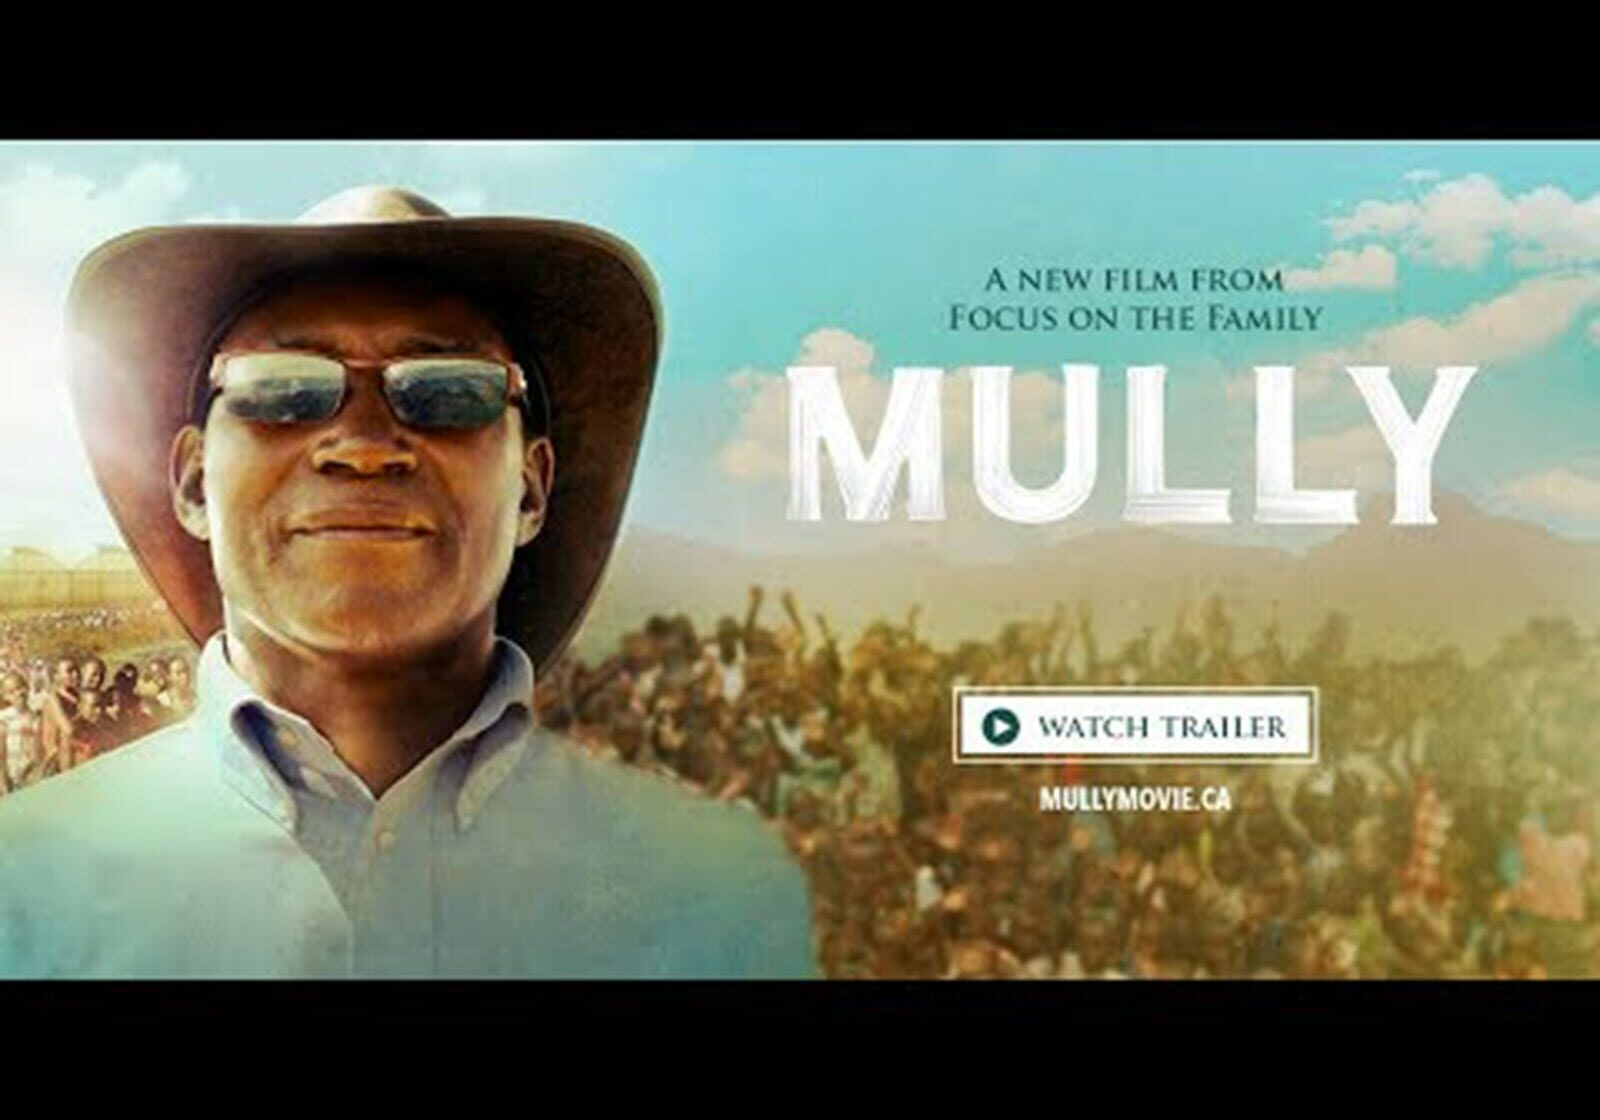 Charles Mully movie trailer